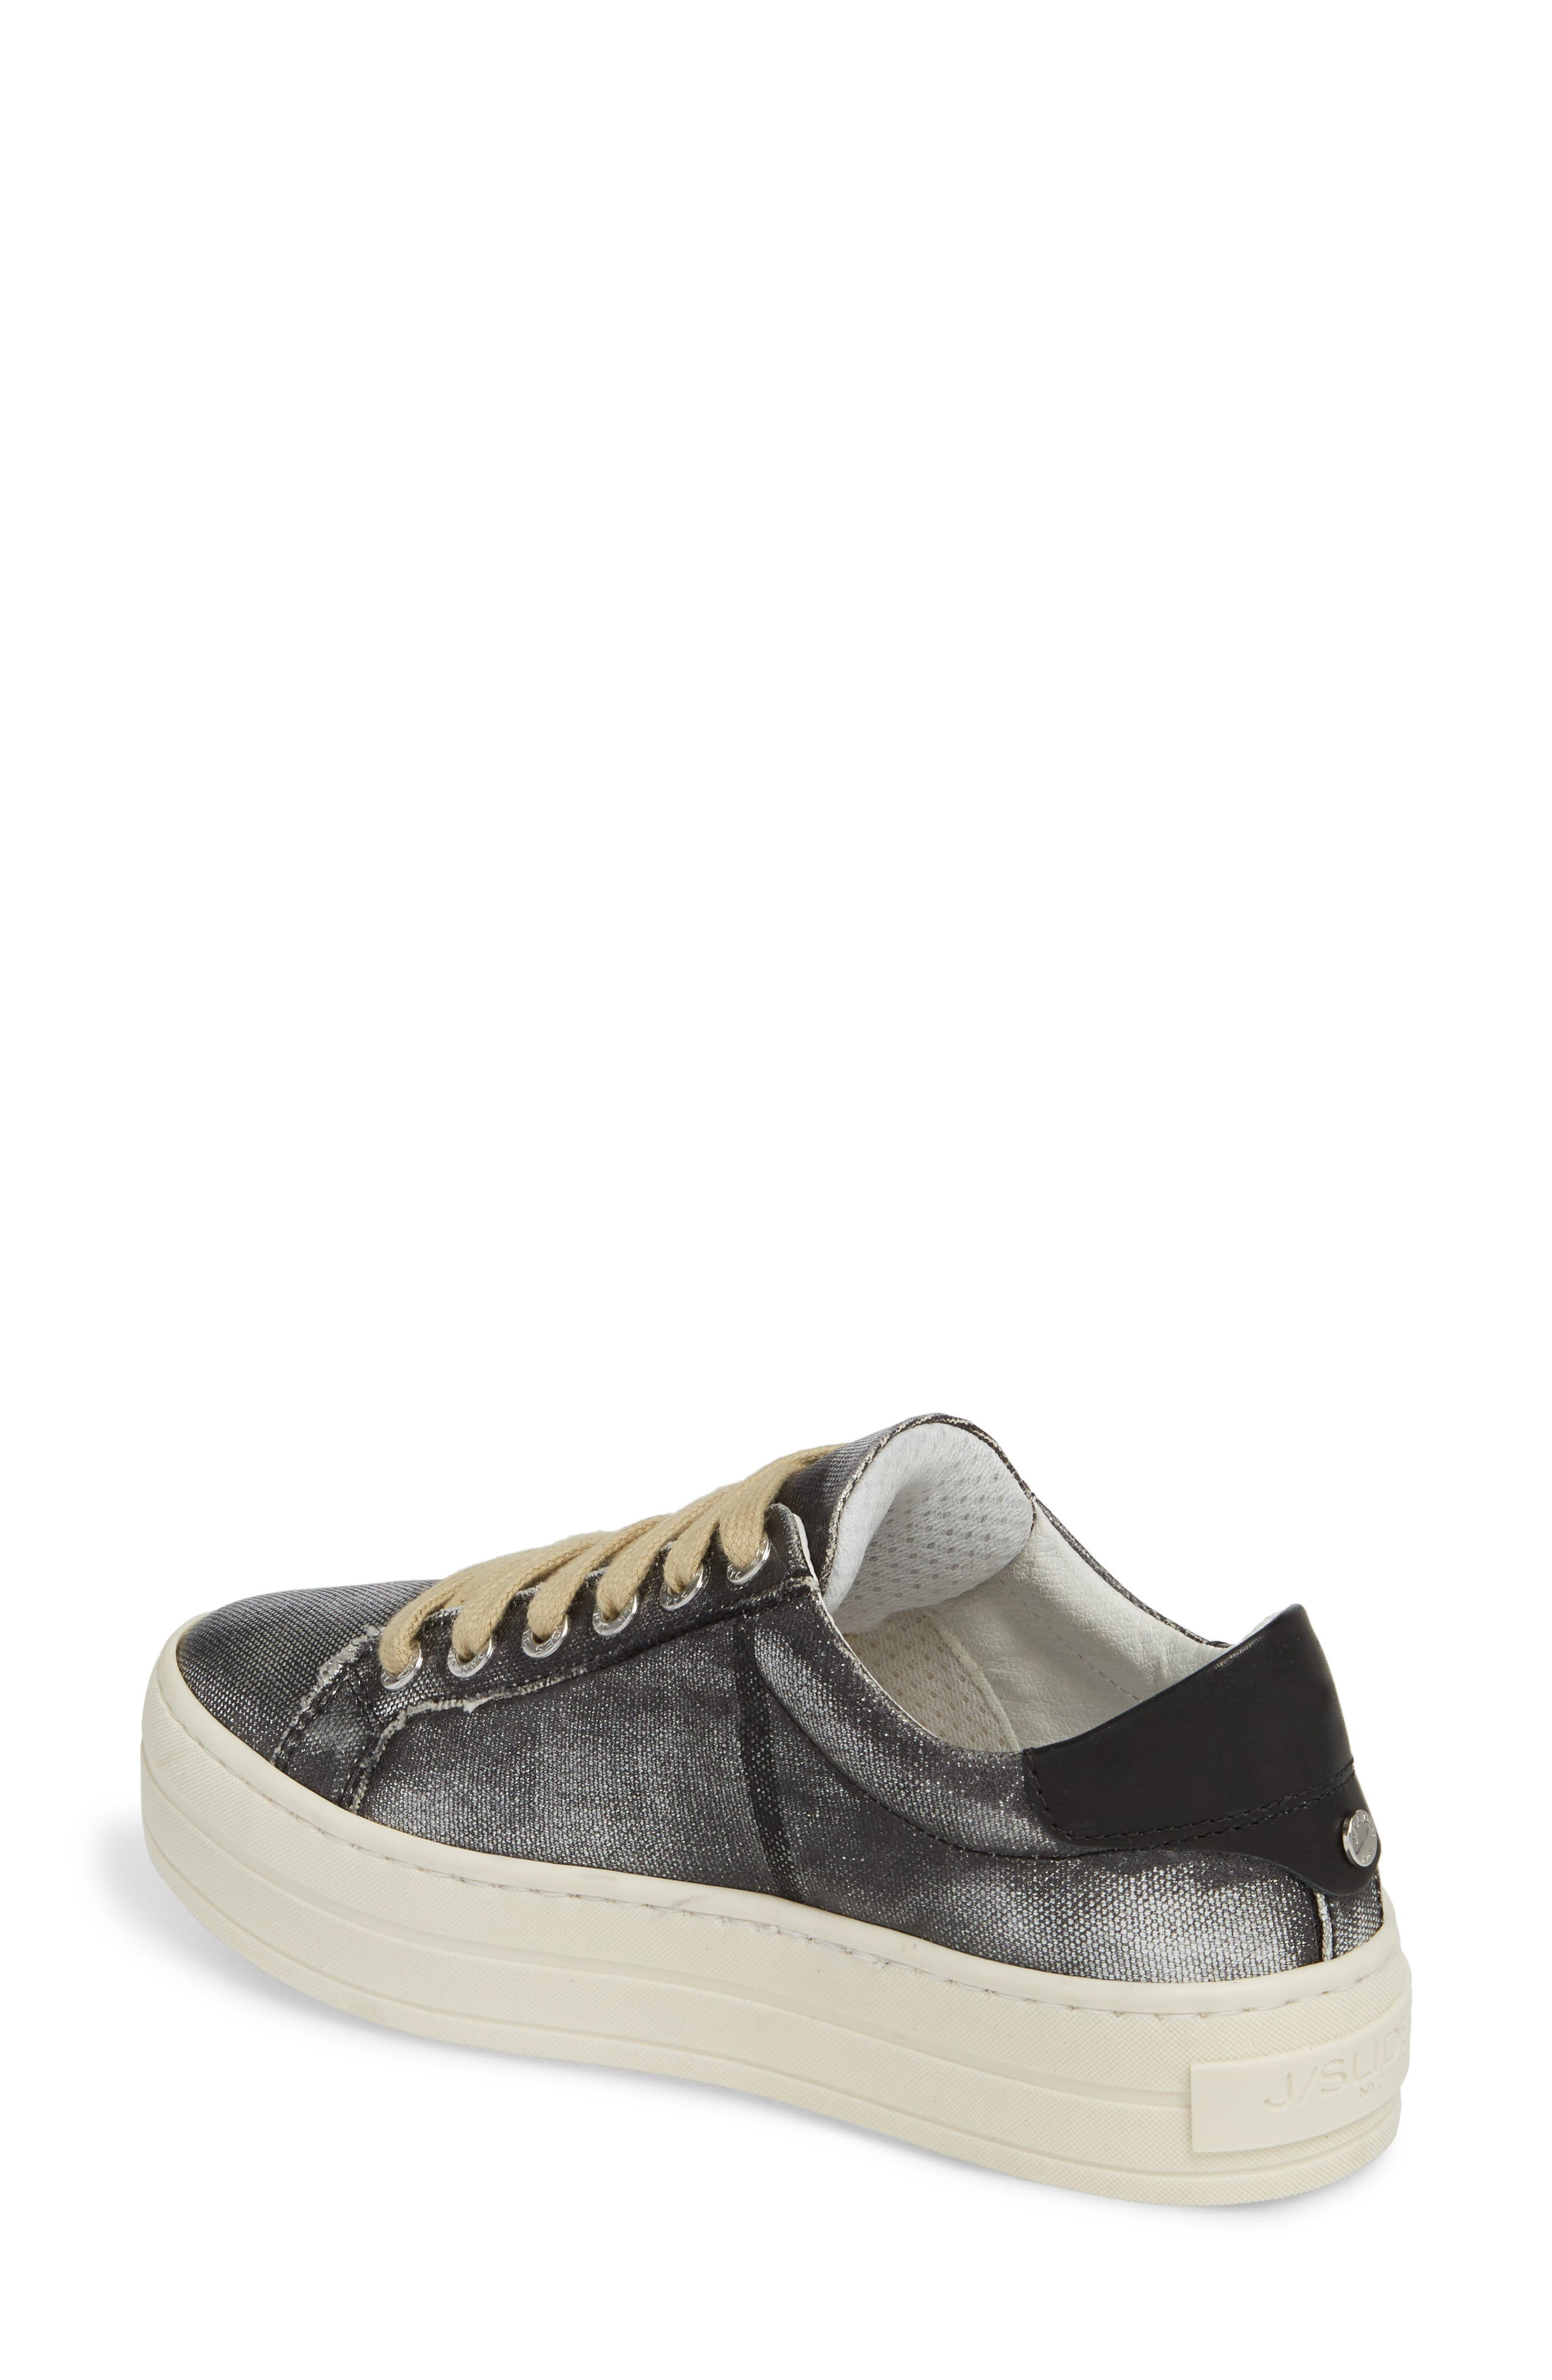 Heather Platform Sneaker,                             Alternate thumbnail 2, color,                             BLACK LEATHER